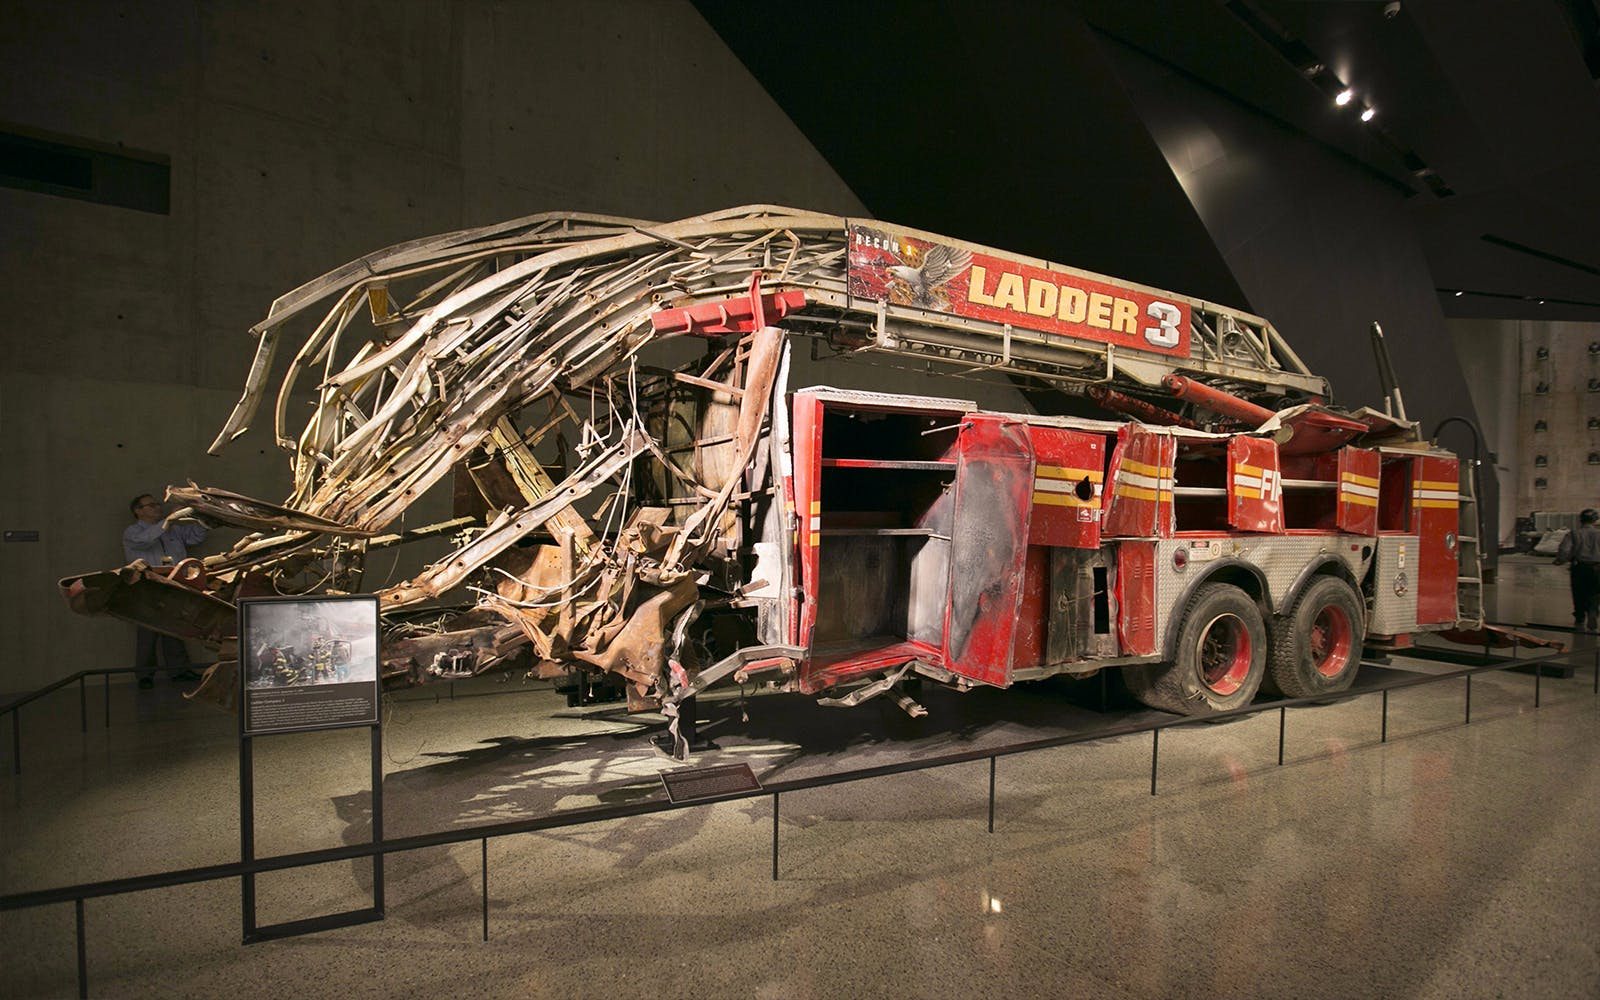 9/11 memorial & museum admission: skip the ticket line-3